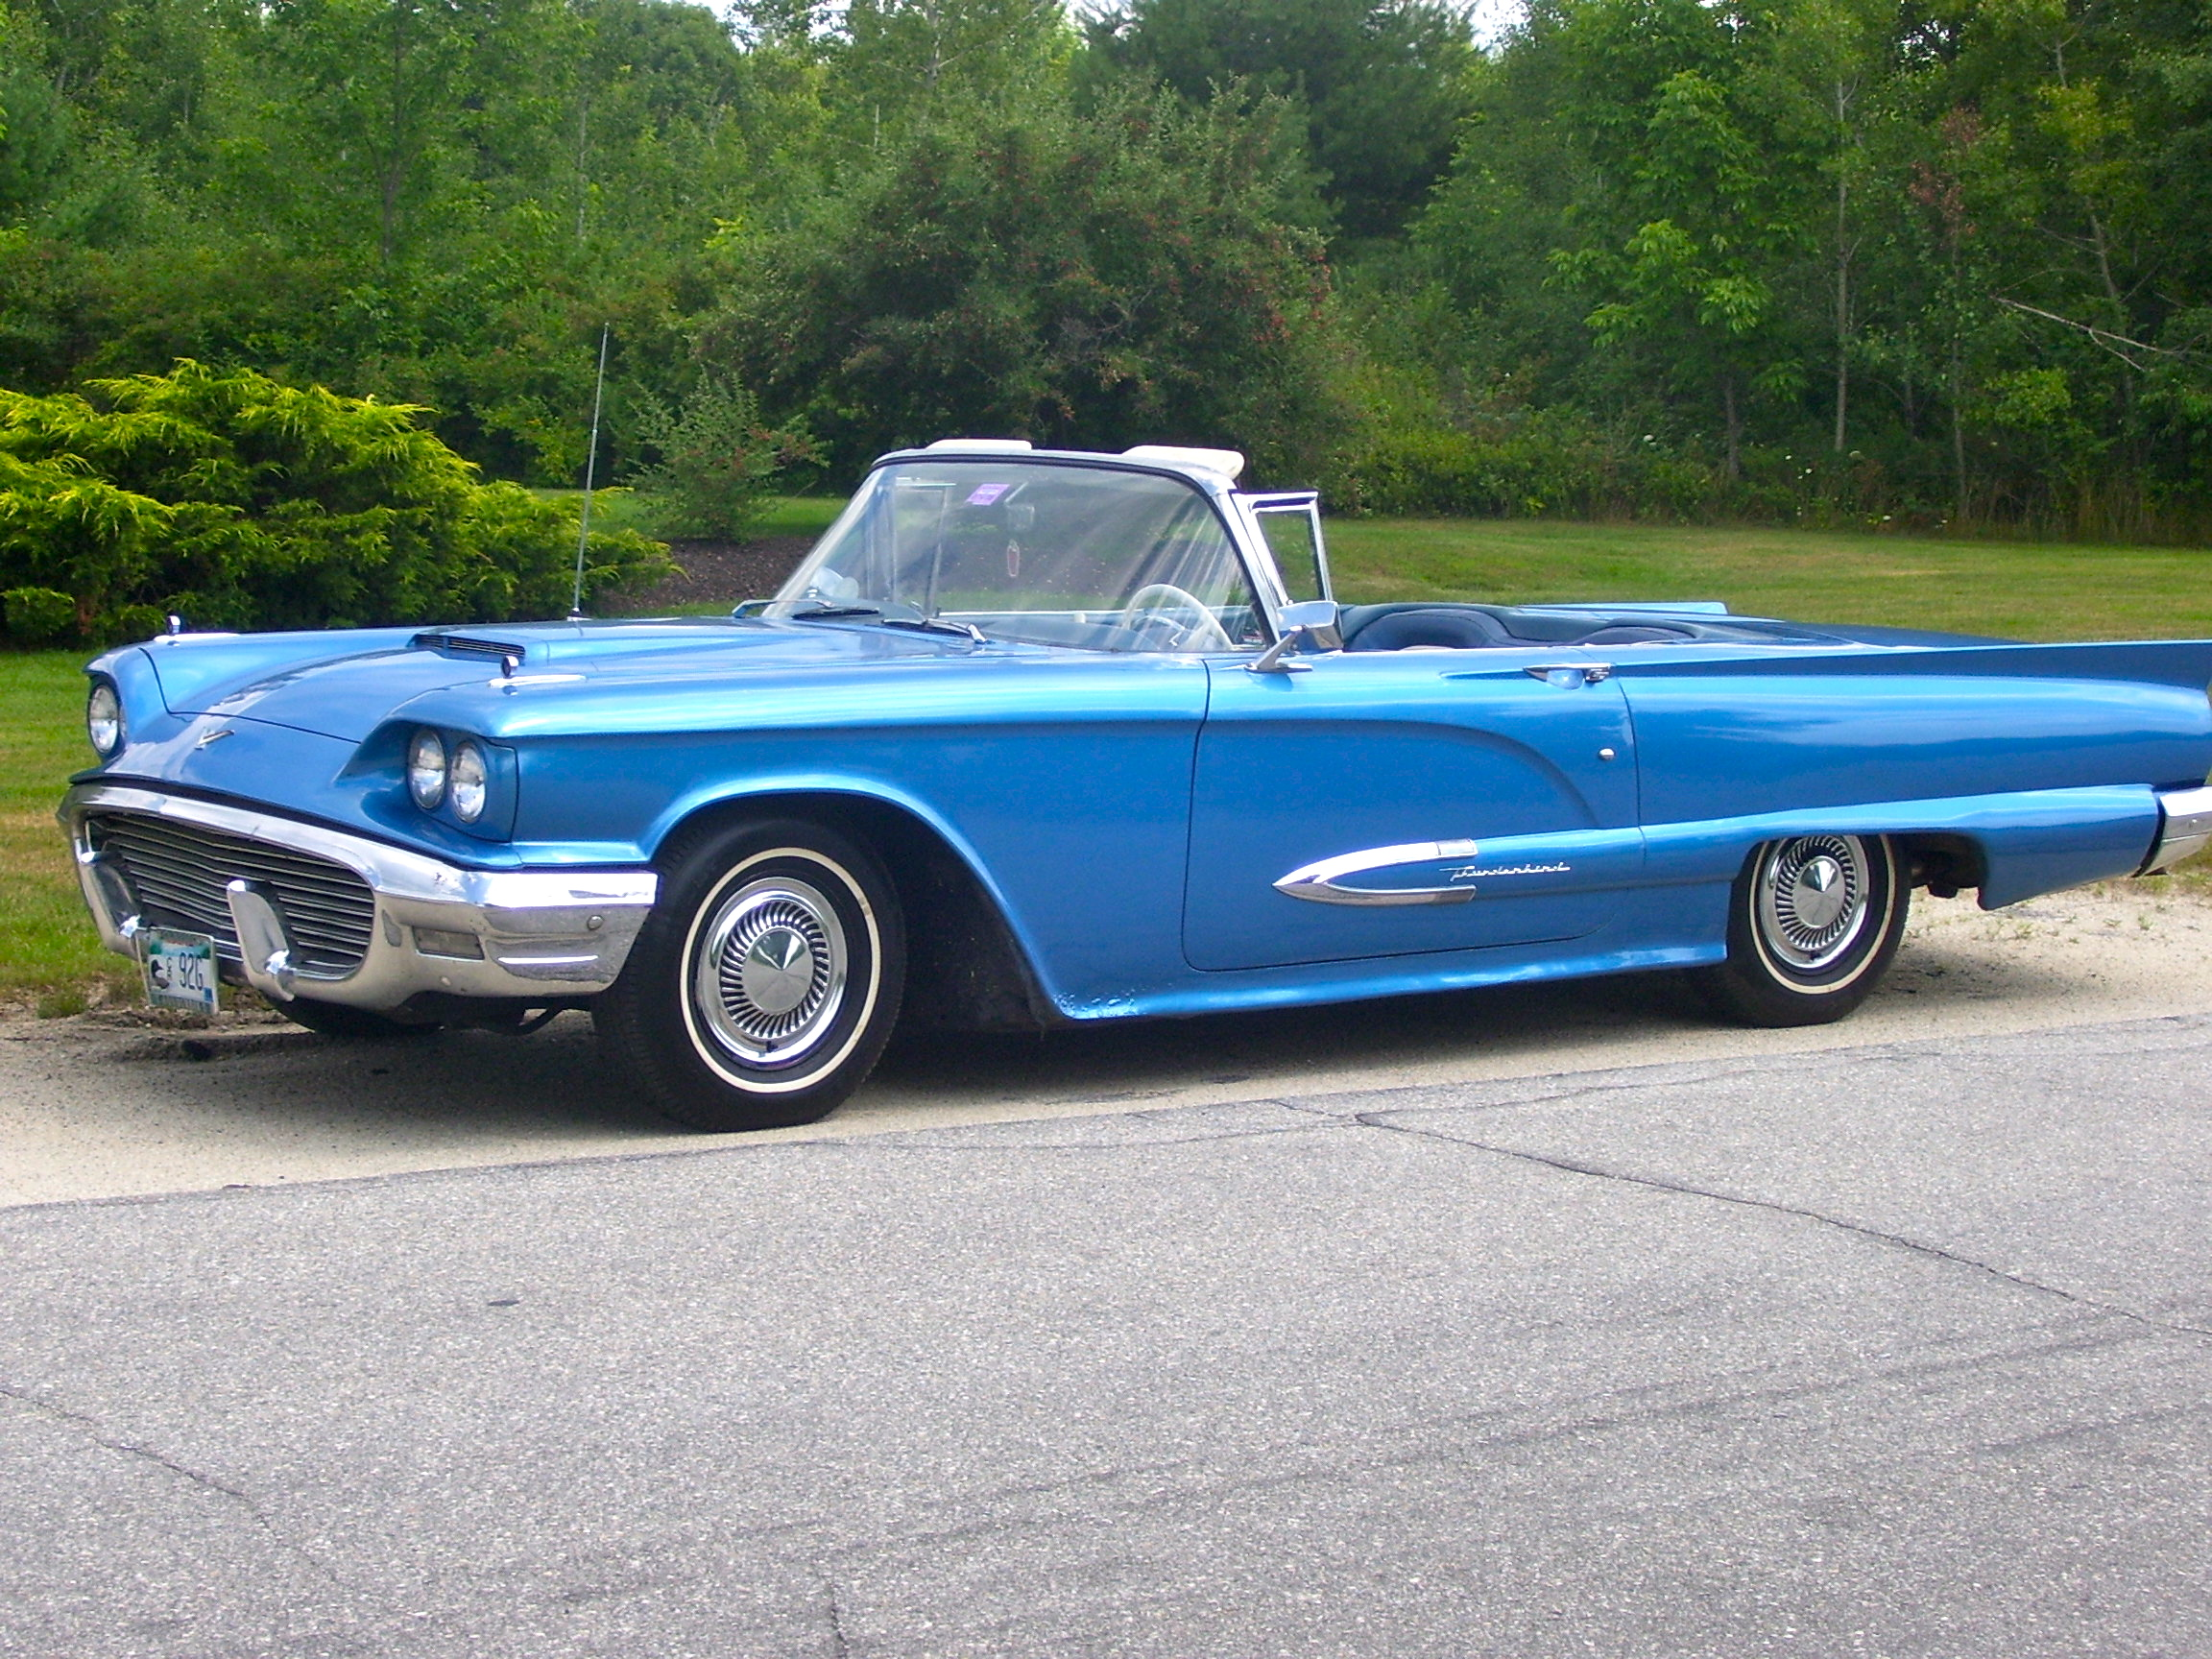 1959 T-Bird - Sent by Robert J